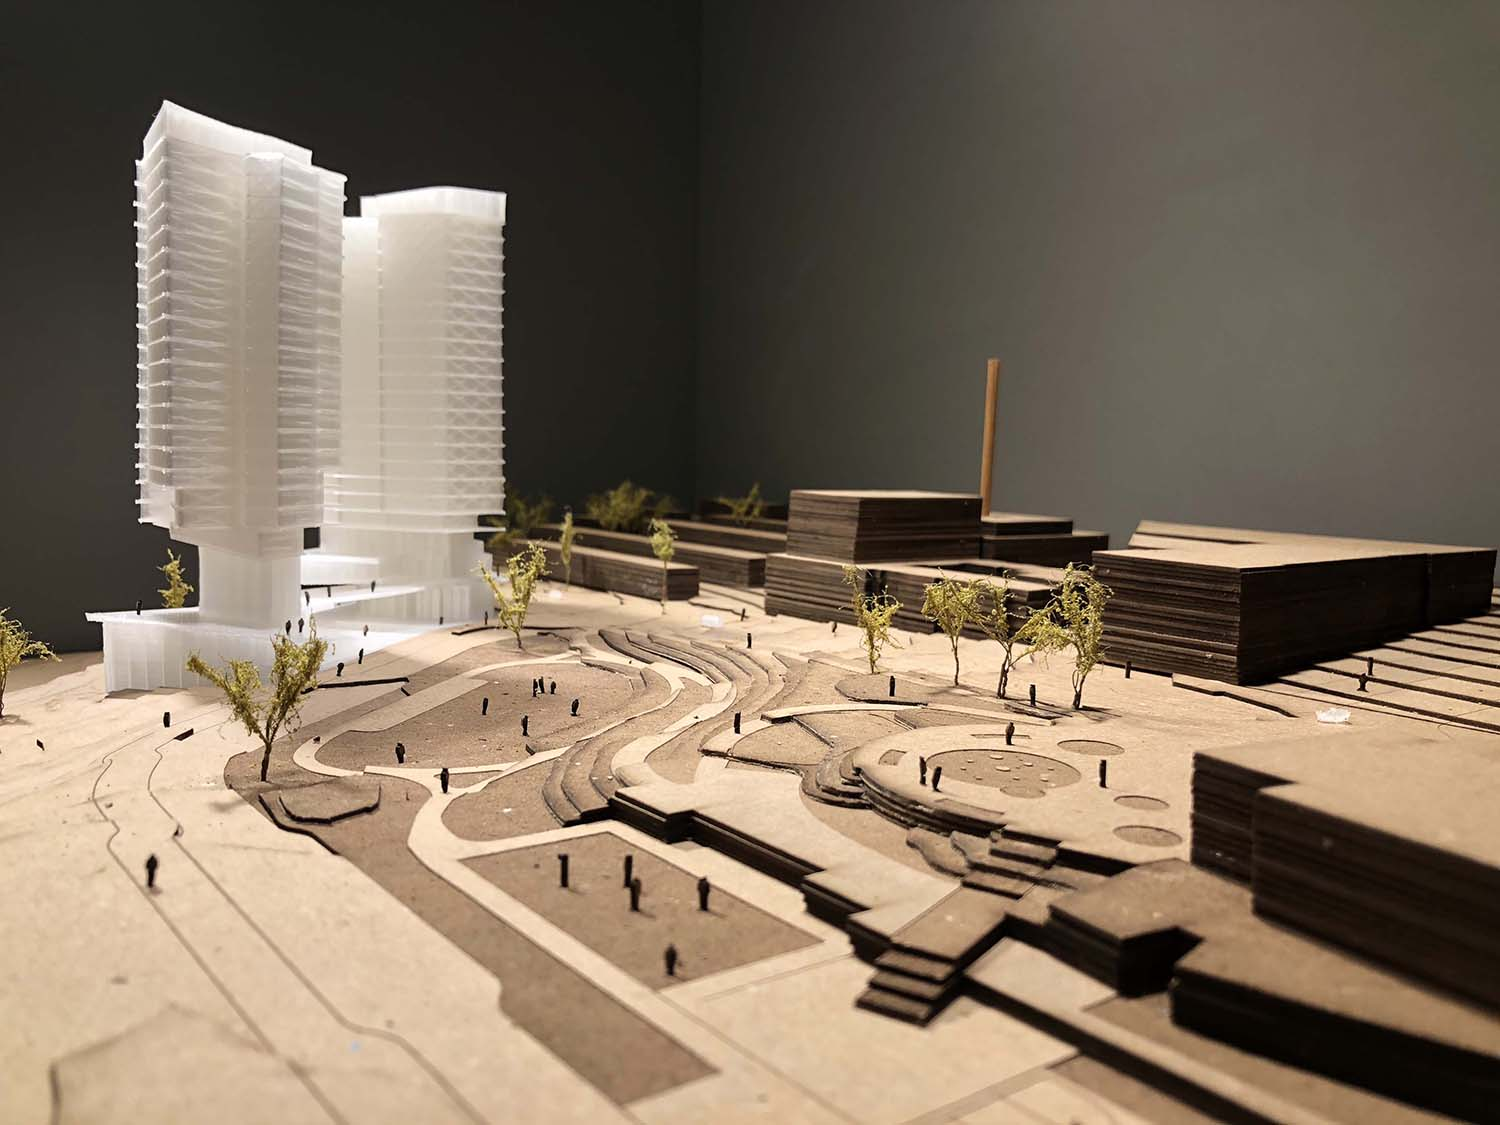 Model of a white tower in a cardboard landscape, presented by the Seattle Architecture Foundation